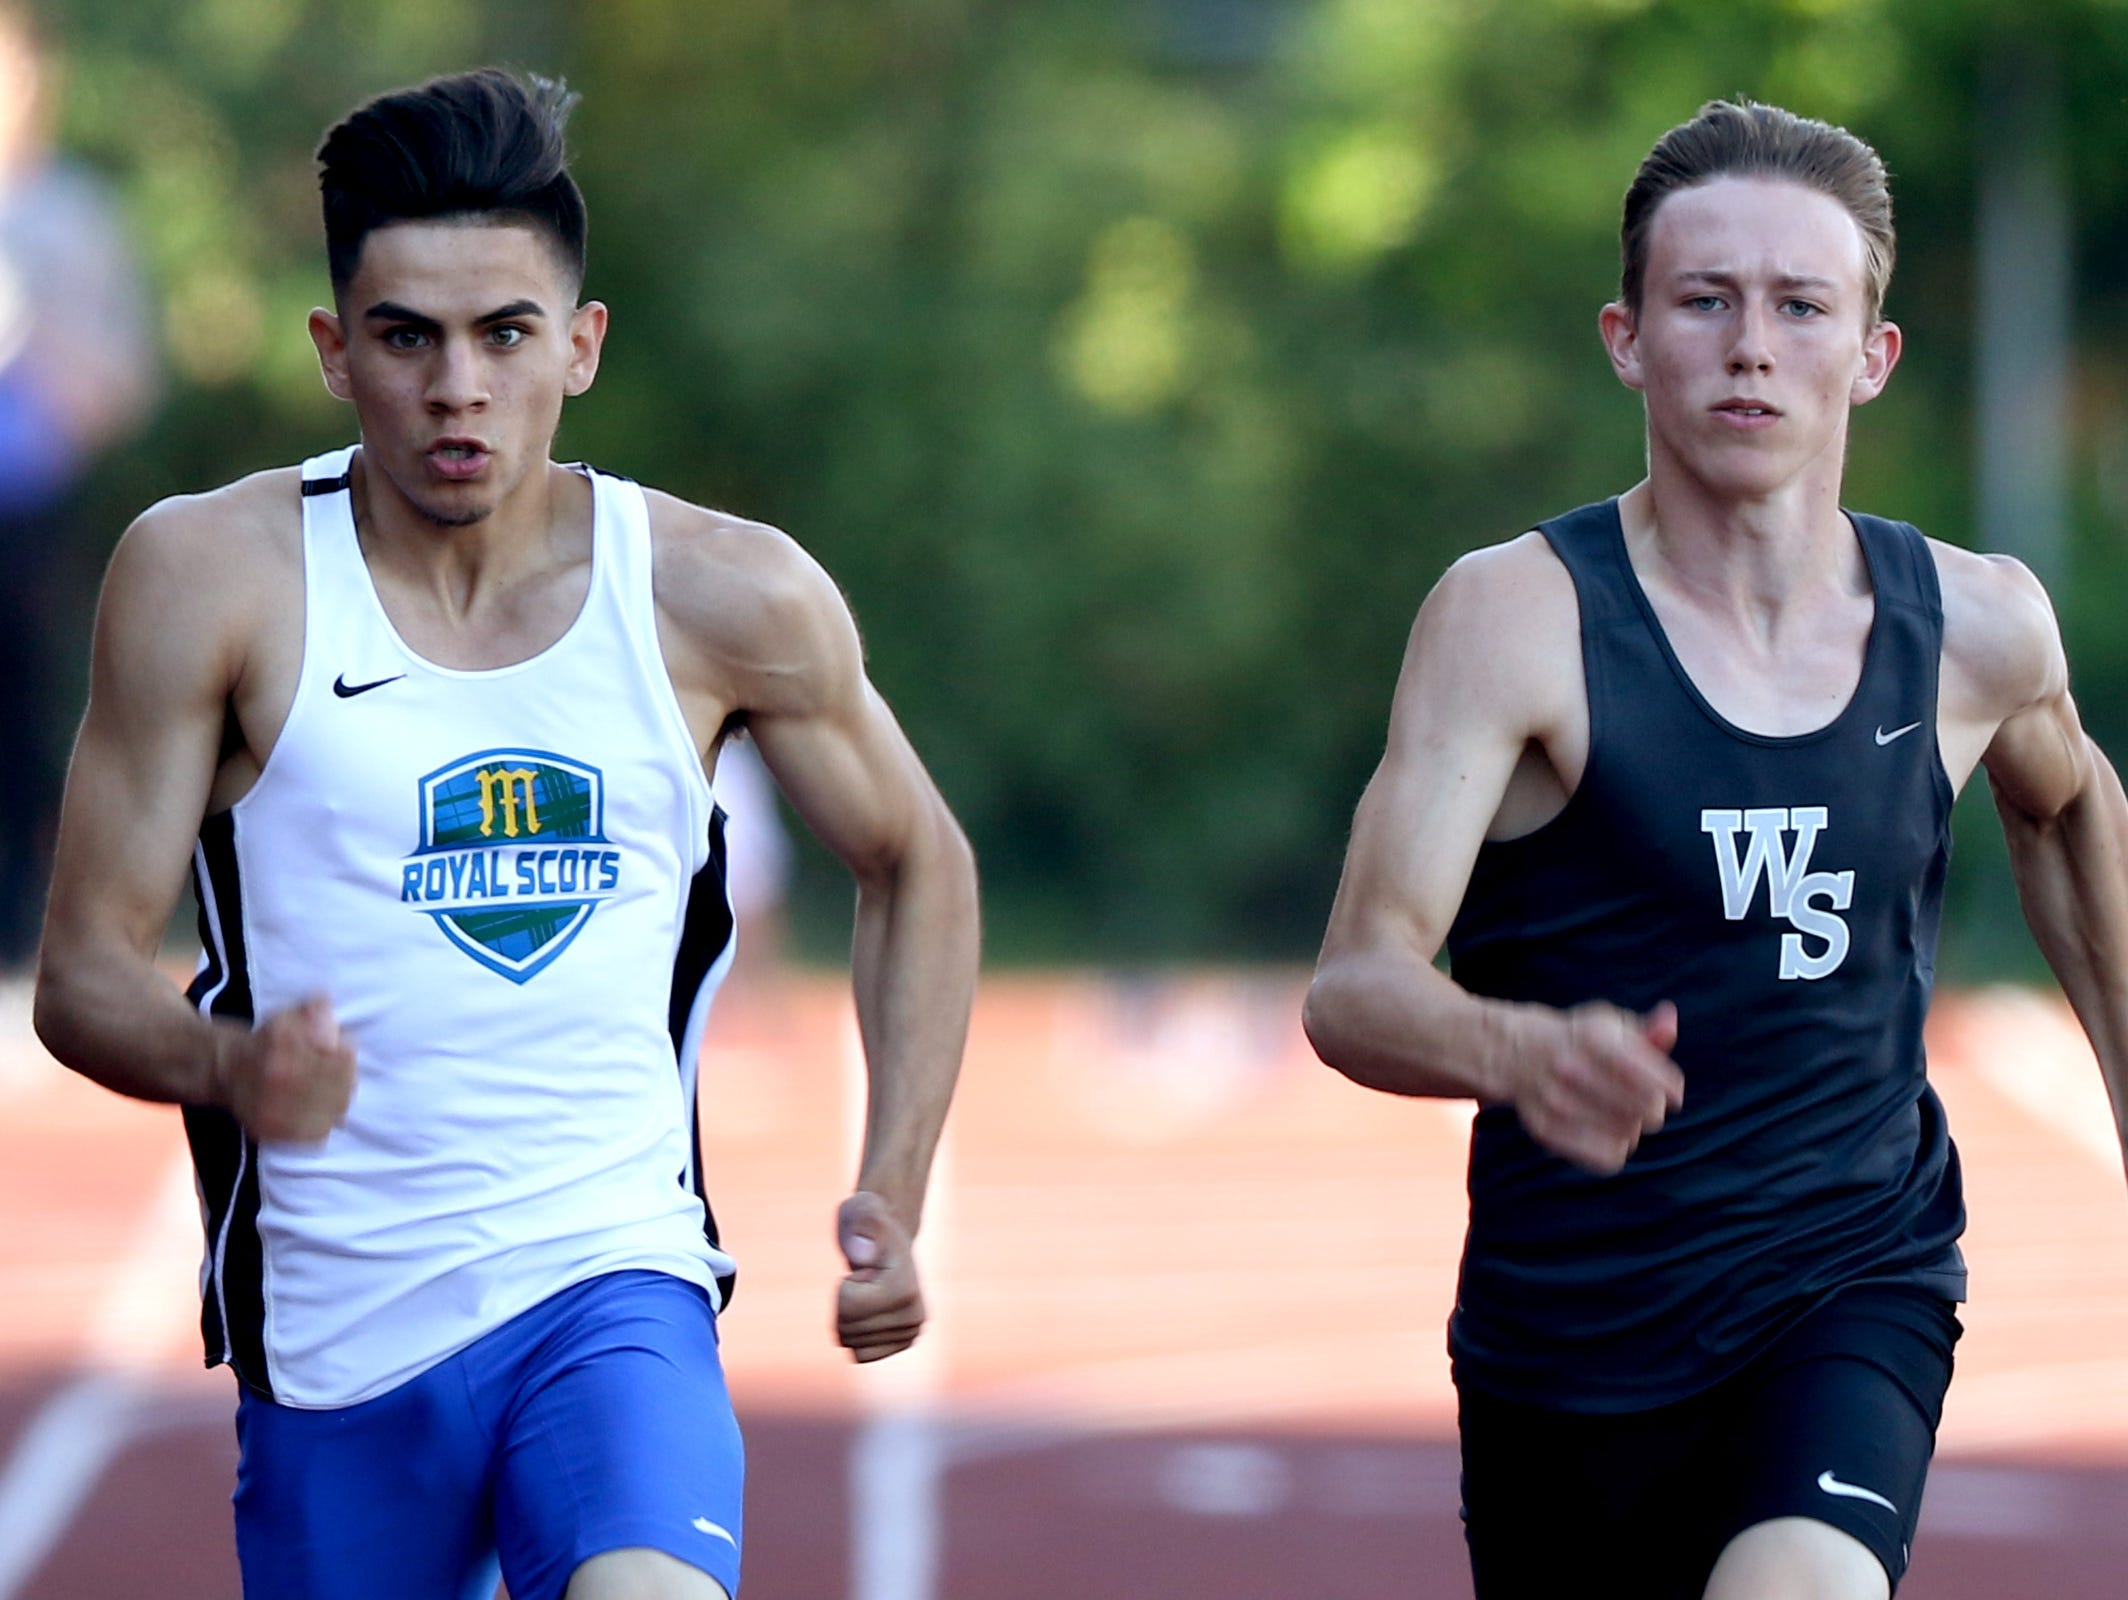 McKay's Israel Garza, left, and West Salem's Chase Lakin compete in the finals of the boys 100 meter dash at the Greater Valley Conference District Championships track and field meet at McMinnville High School on Friday, May 13, 2016. Garza placed first and Lakin second.